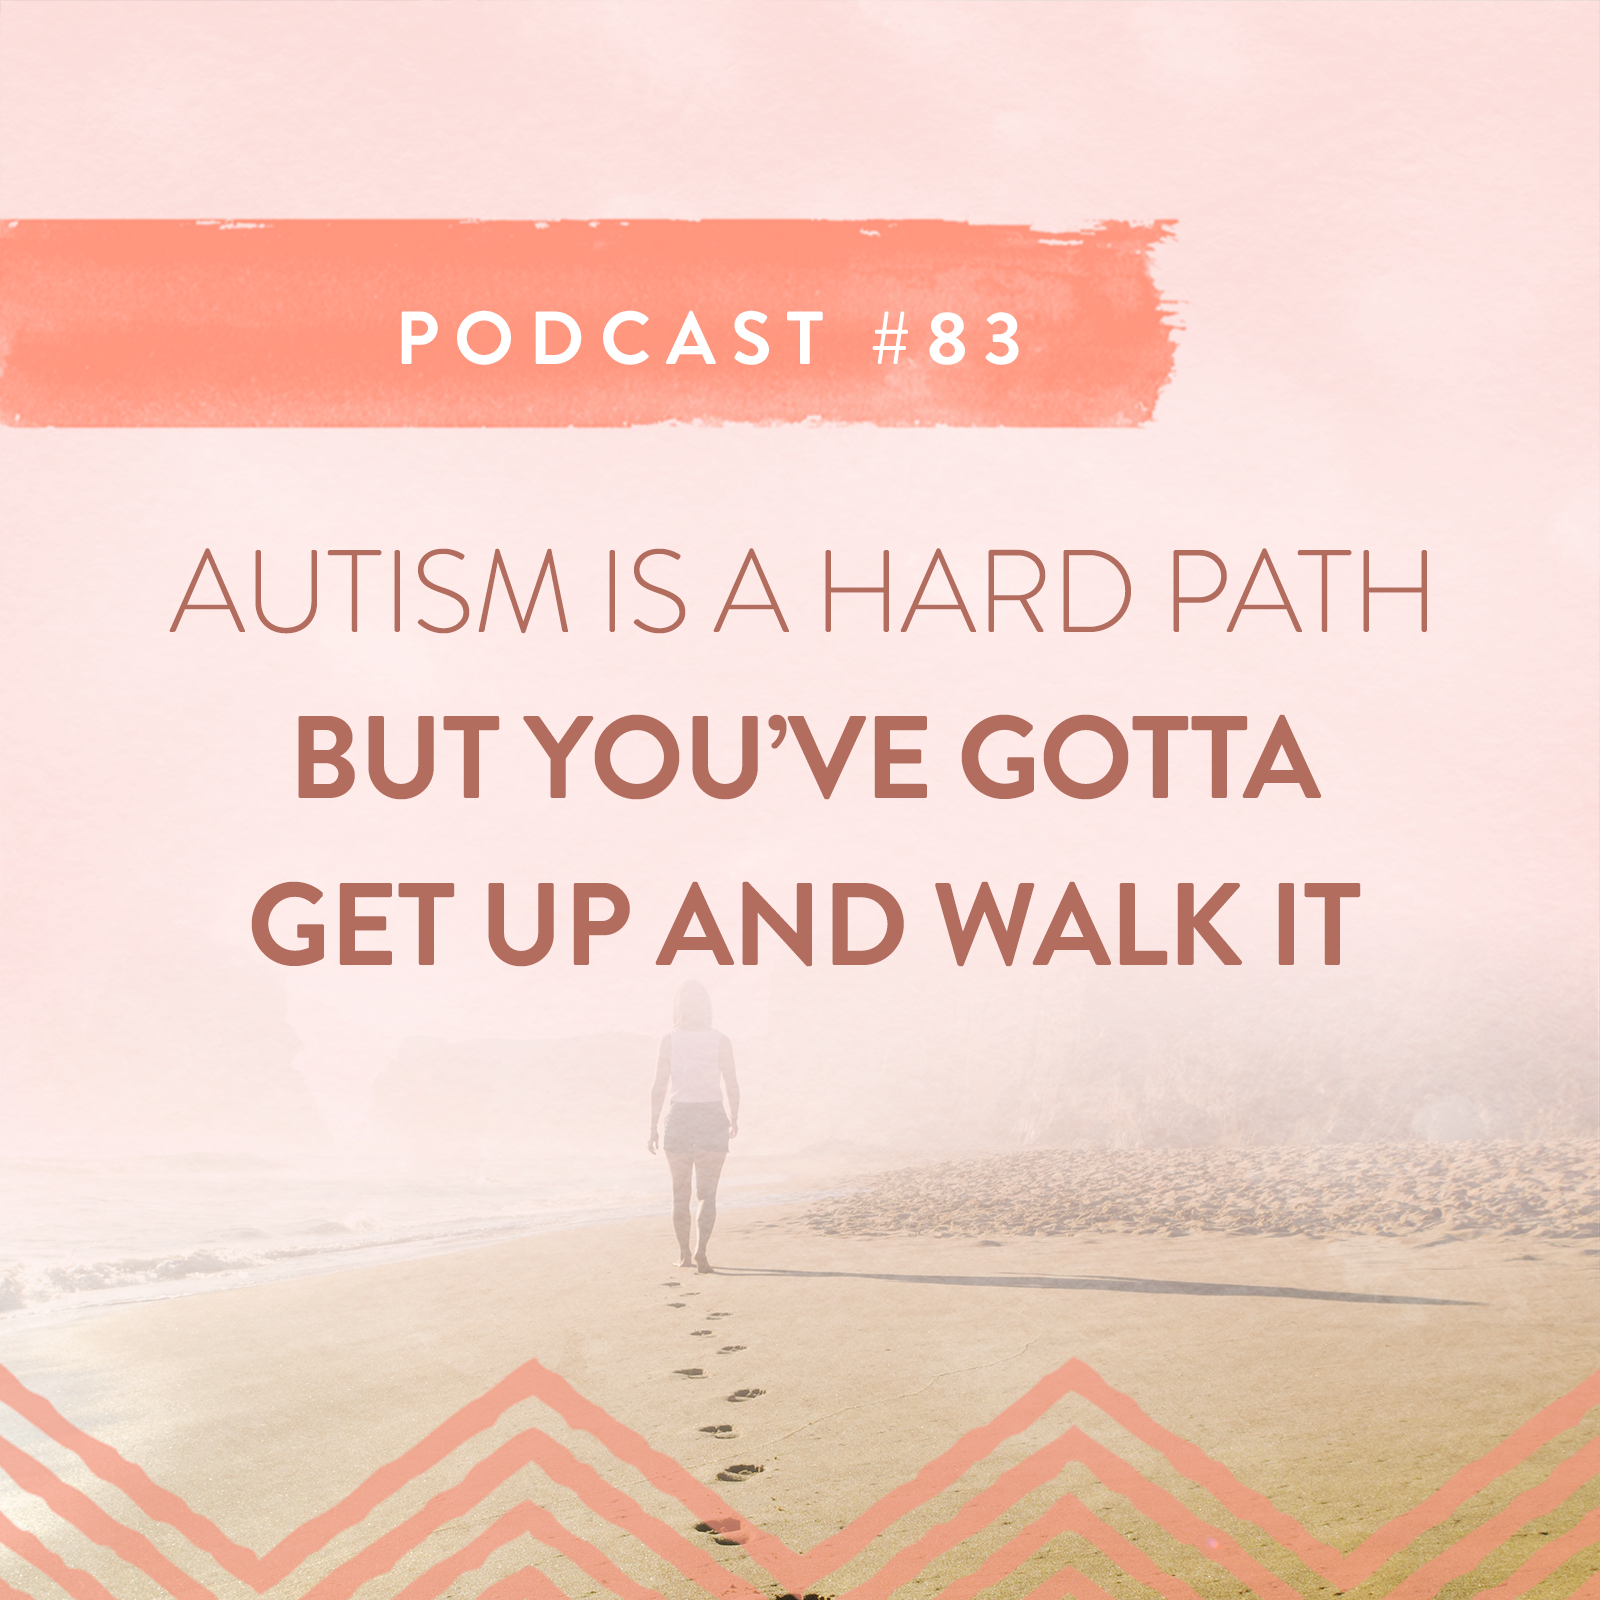 AUTISM IS A HARD PATH - BUT YOU HAVE TO WALK IT